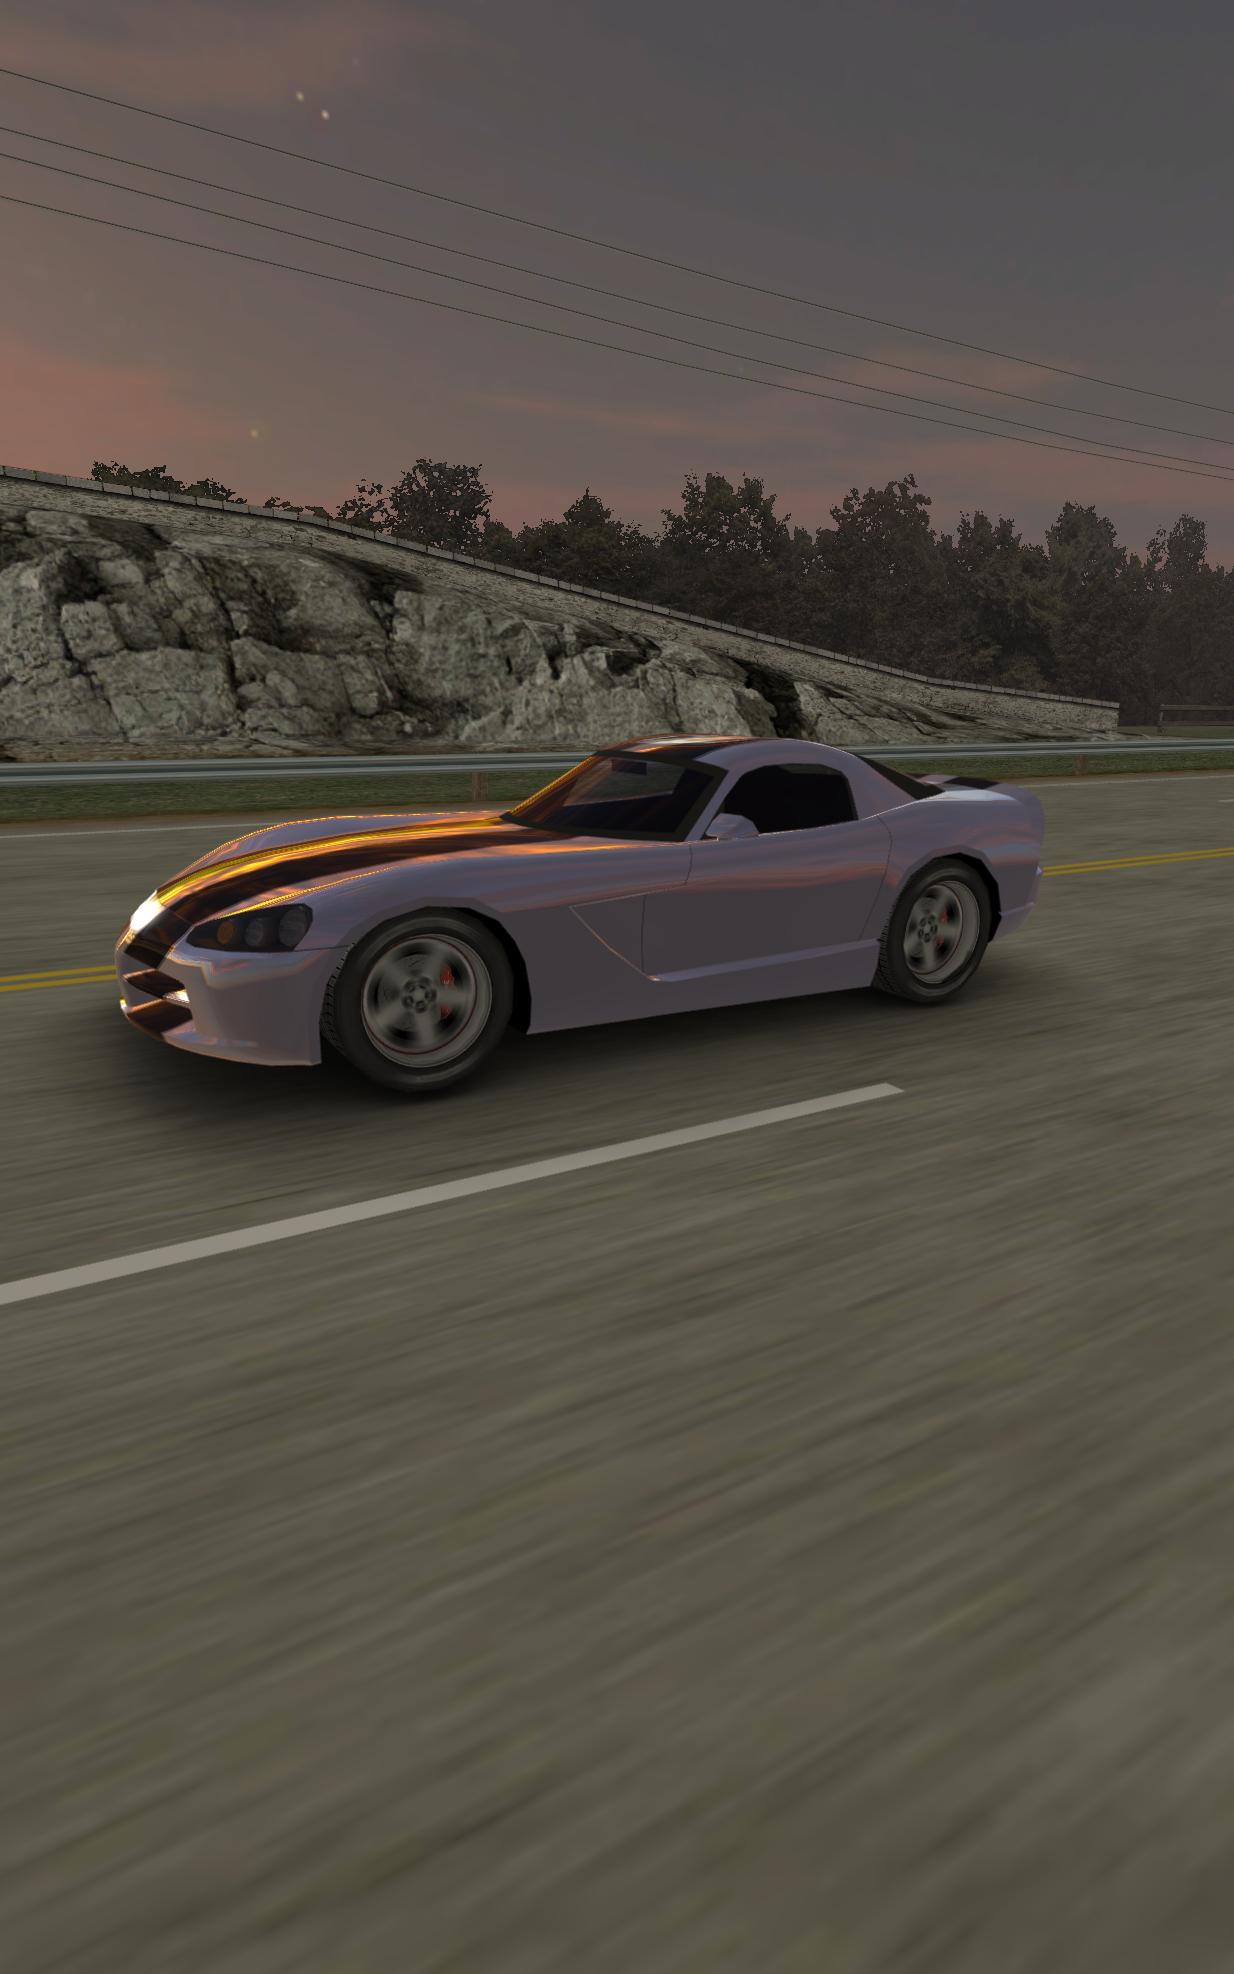 3d Cars Live Wallpaper For Android Apk Download